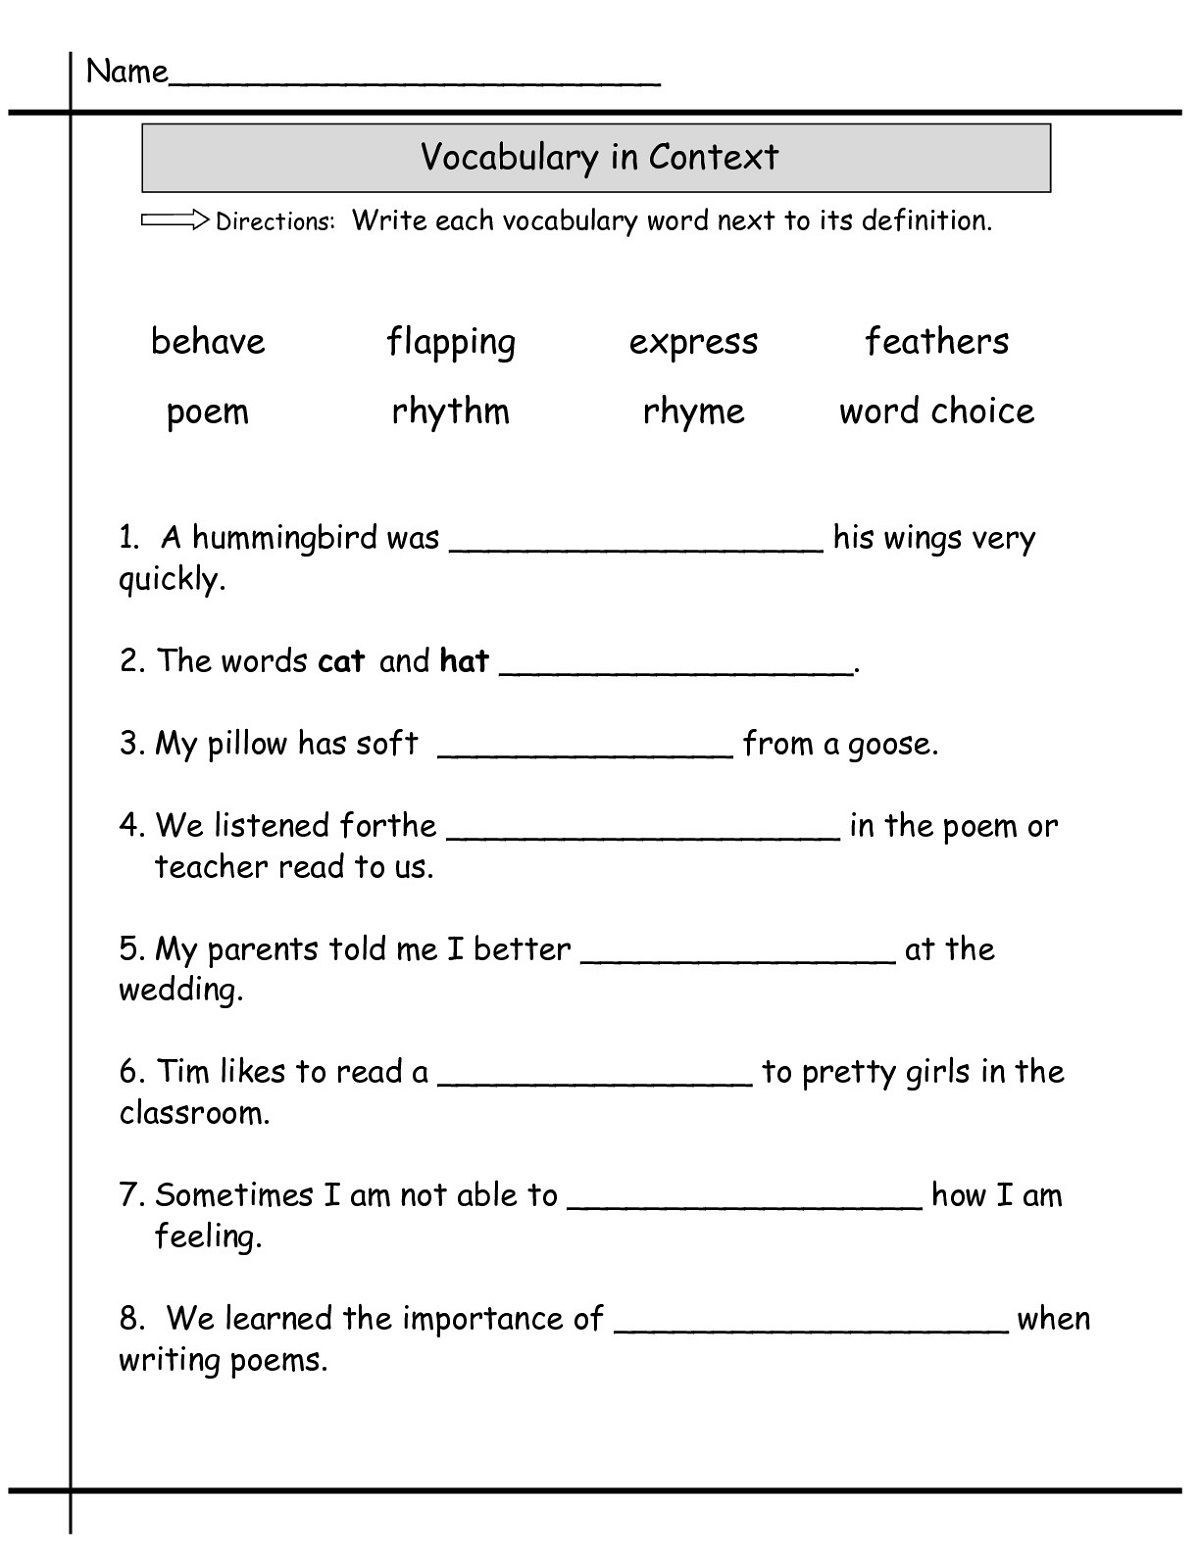 Phonics Worksheets for 3rd Graders Coloring Book 2nd Grade Phonics Worksheets Picture